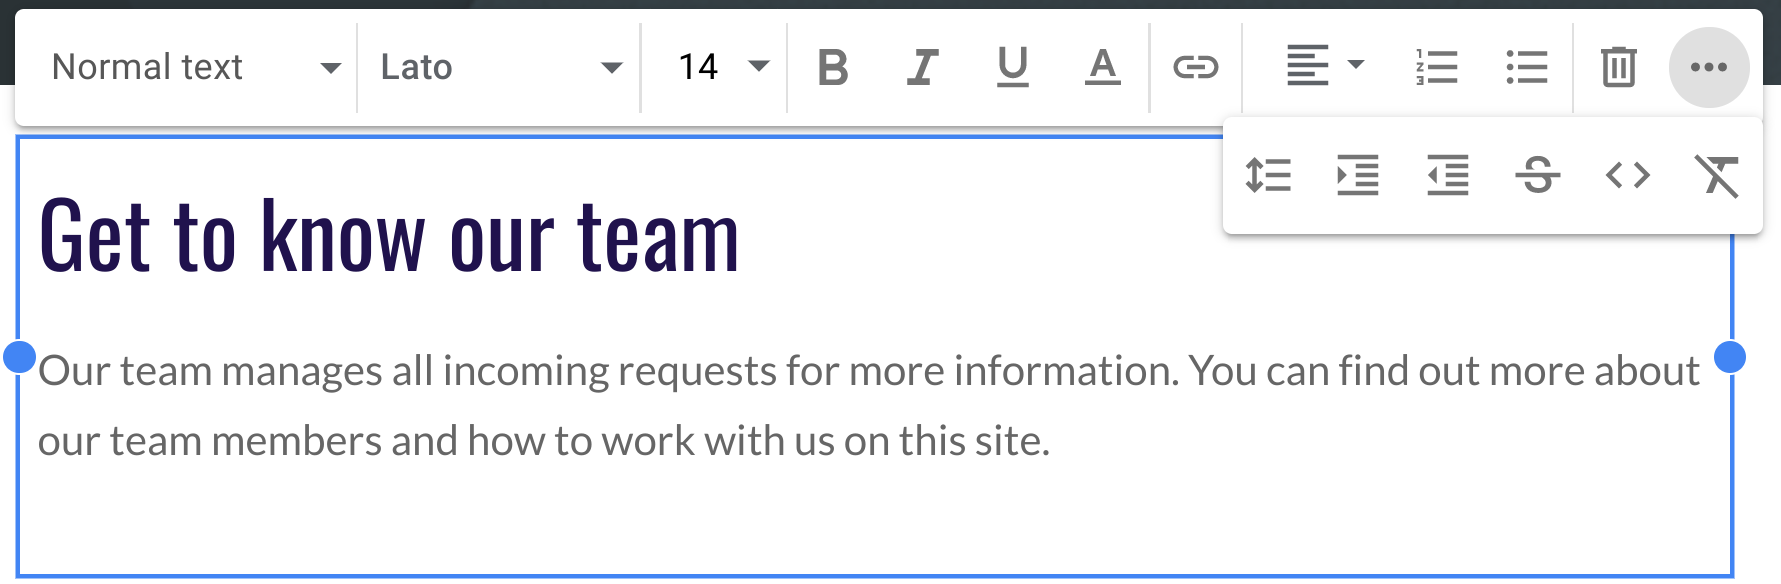 Customize text style and appearance in Google Sites